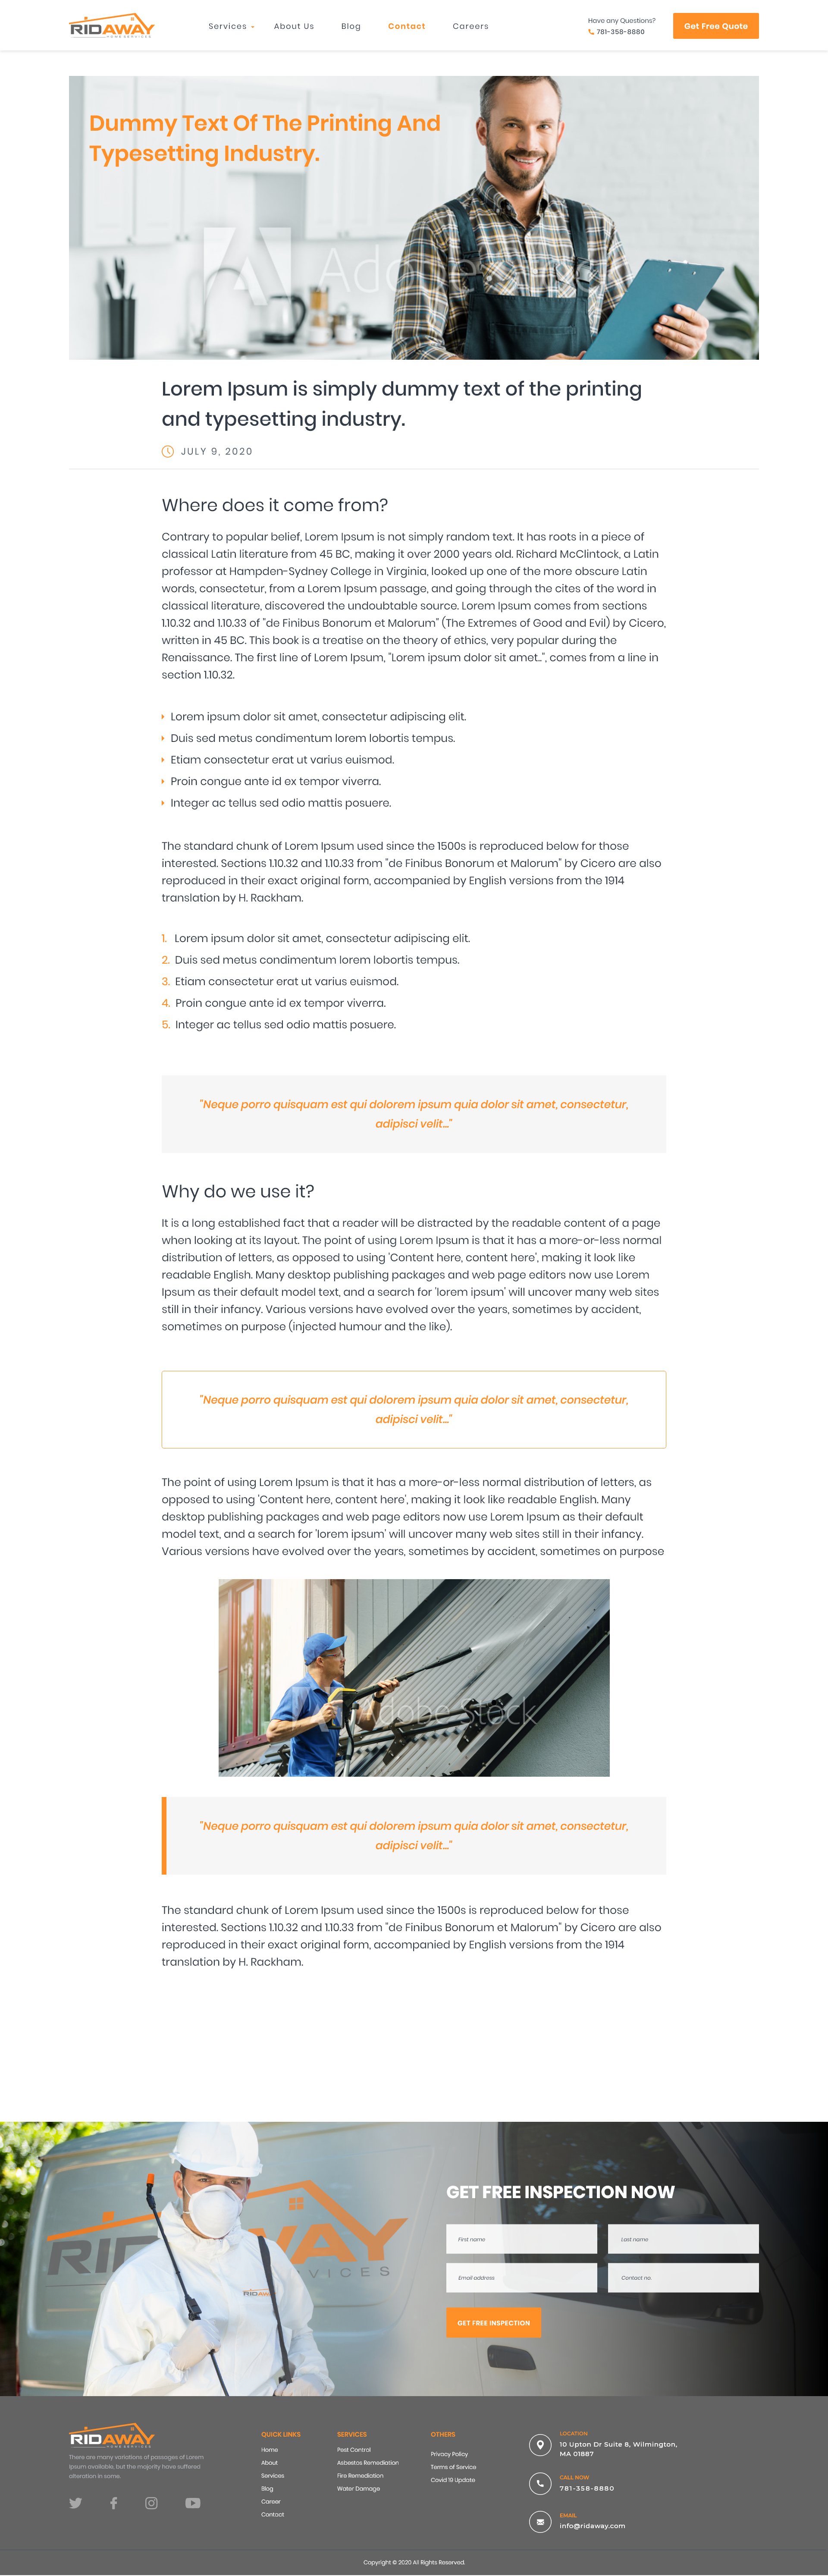 Pest & remediation web page design for remaining website pages